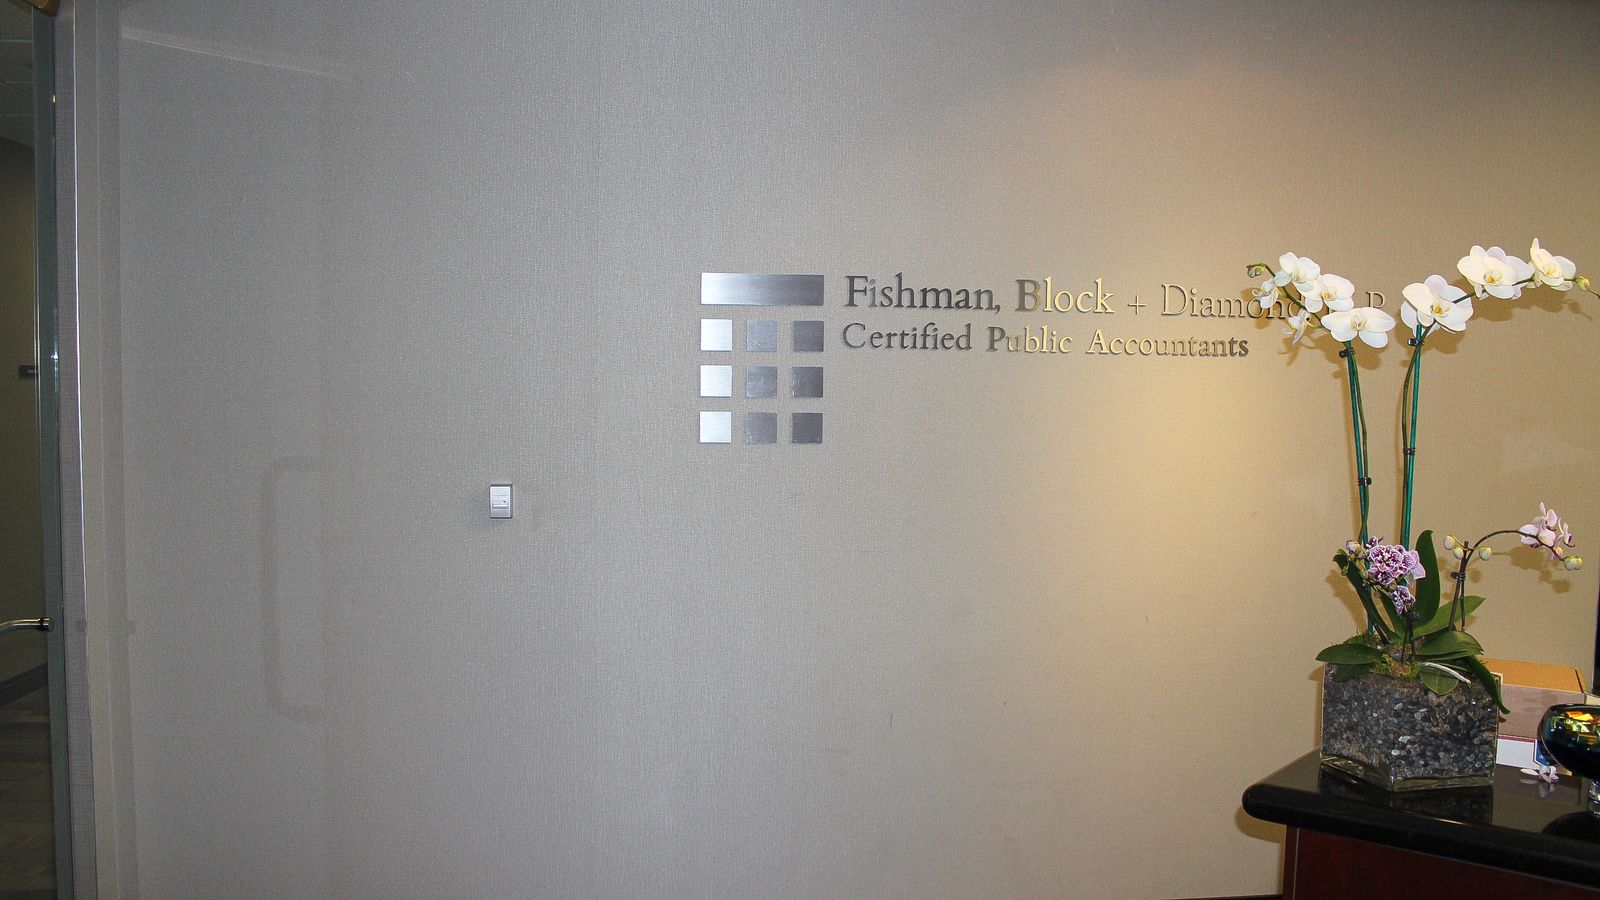 Fishmanm Block+Diamond, LLP Certified Public Accountants office lobby sign made of brushed aluminum for interior branding